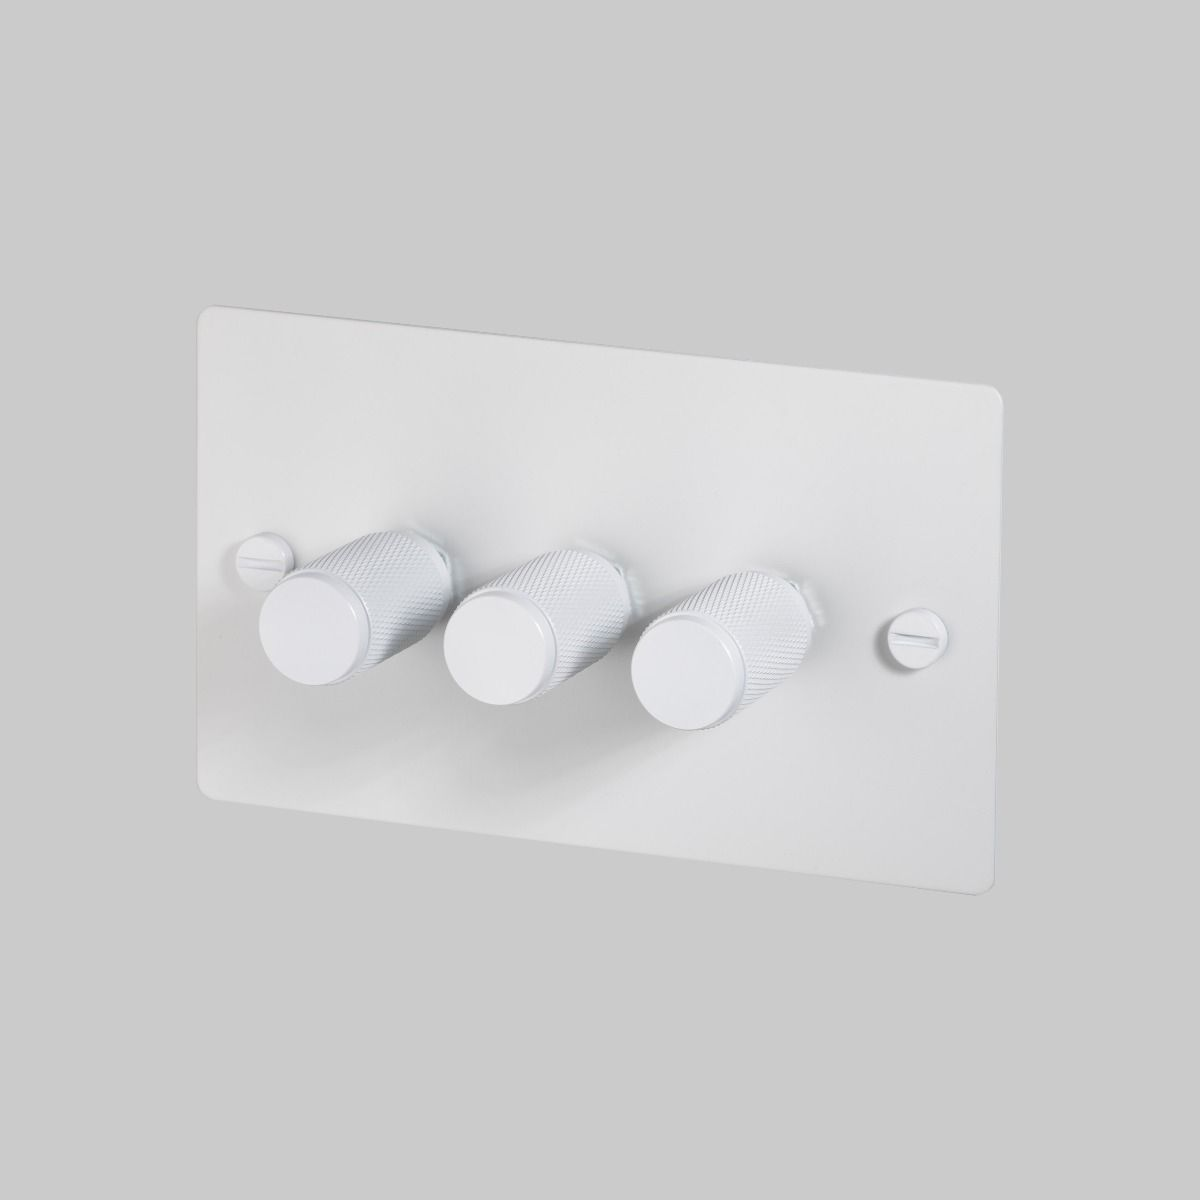 Buster + Punch Dimmer Switch 3G